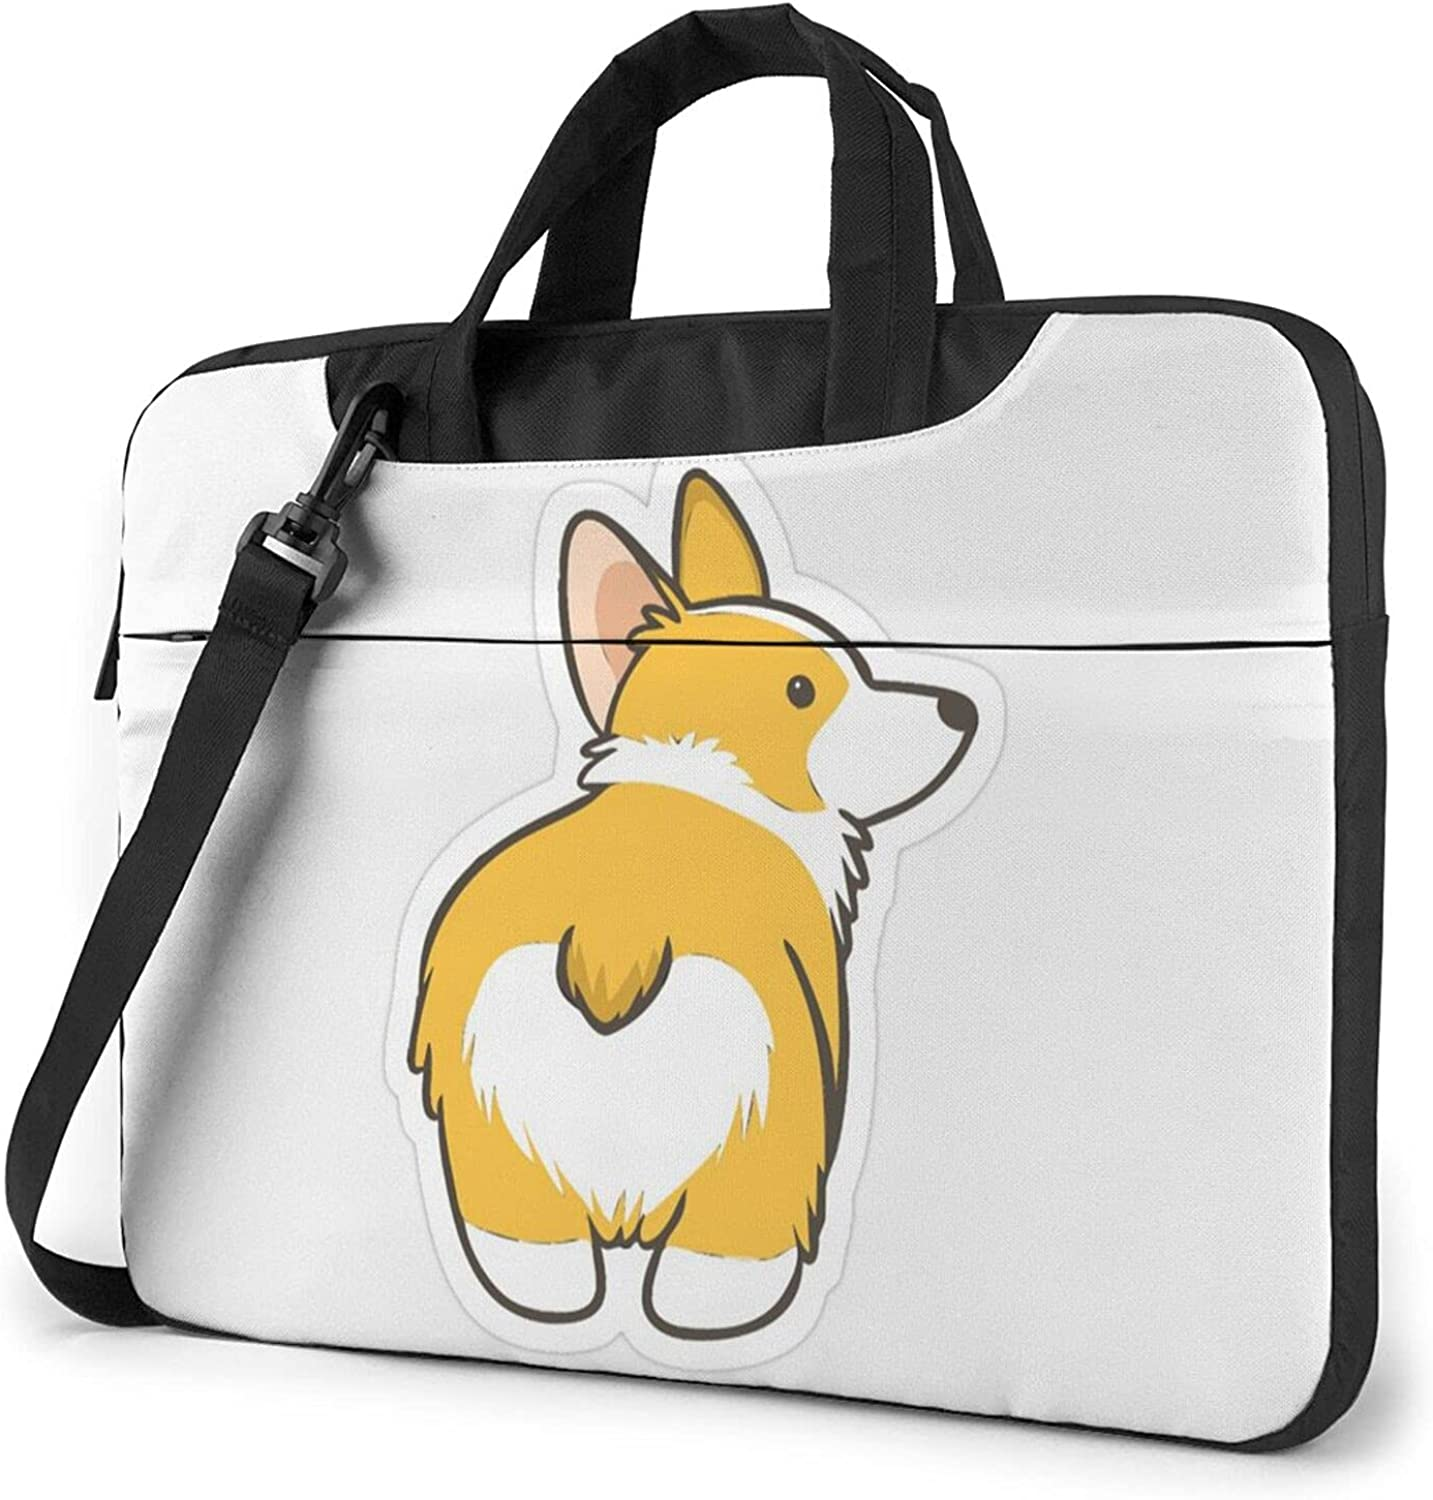 Laptop Shoulder Bag Cute Dog Messen Butt Computer Heart Fixed price for sale 35% OFF Tote